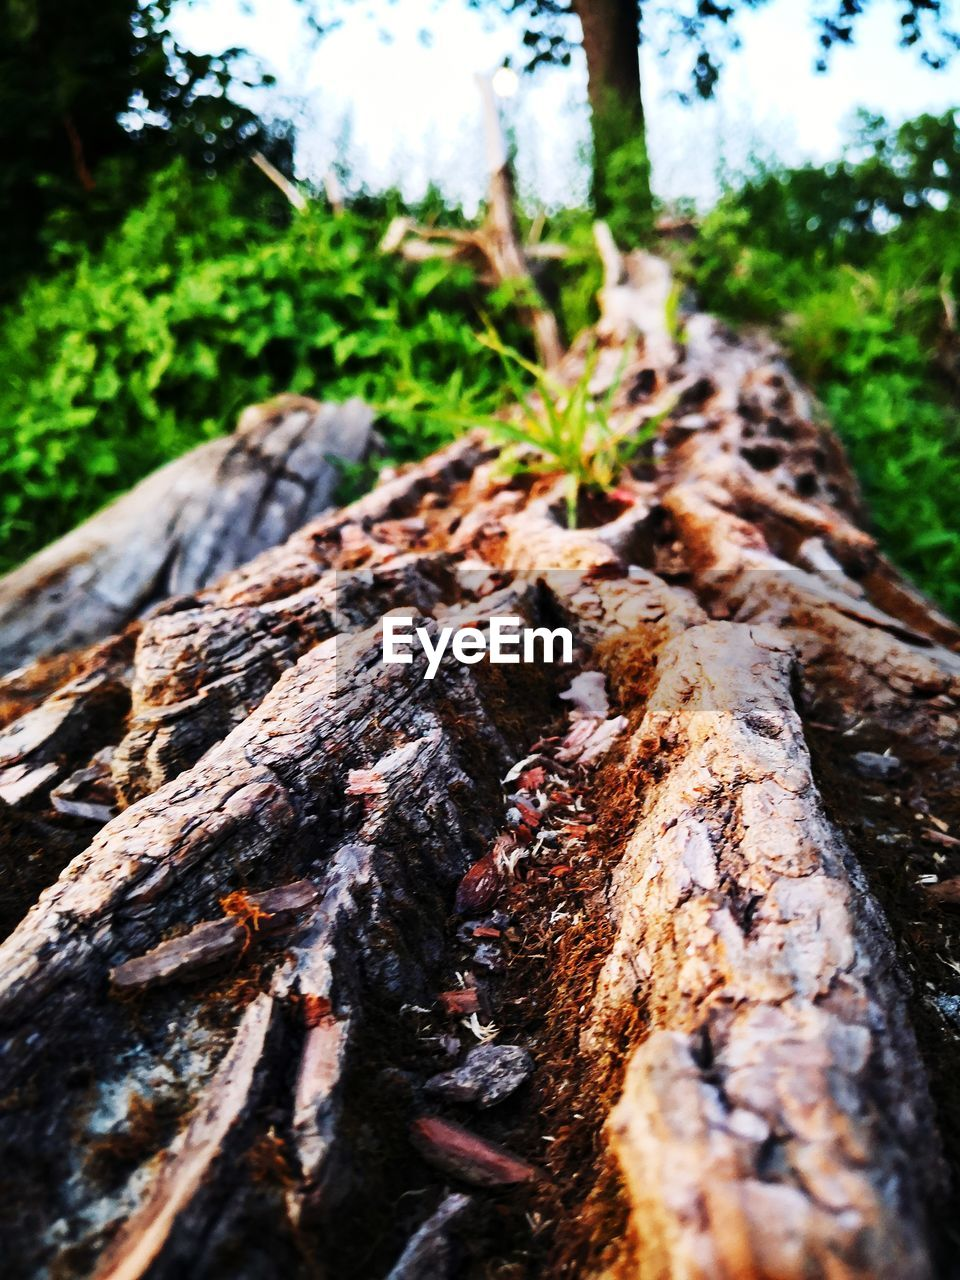 plant, tree, tree trunk, wood - material, trunk, nature, selective focus, day, wood, close-up, forest, textured, focus on foreground, land, no people, bark, growth, log, outdoors, rough, woodland, surface level